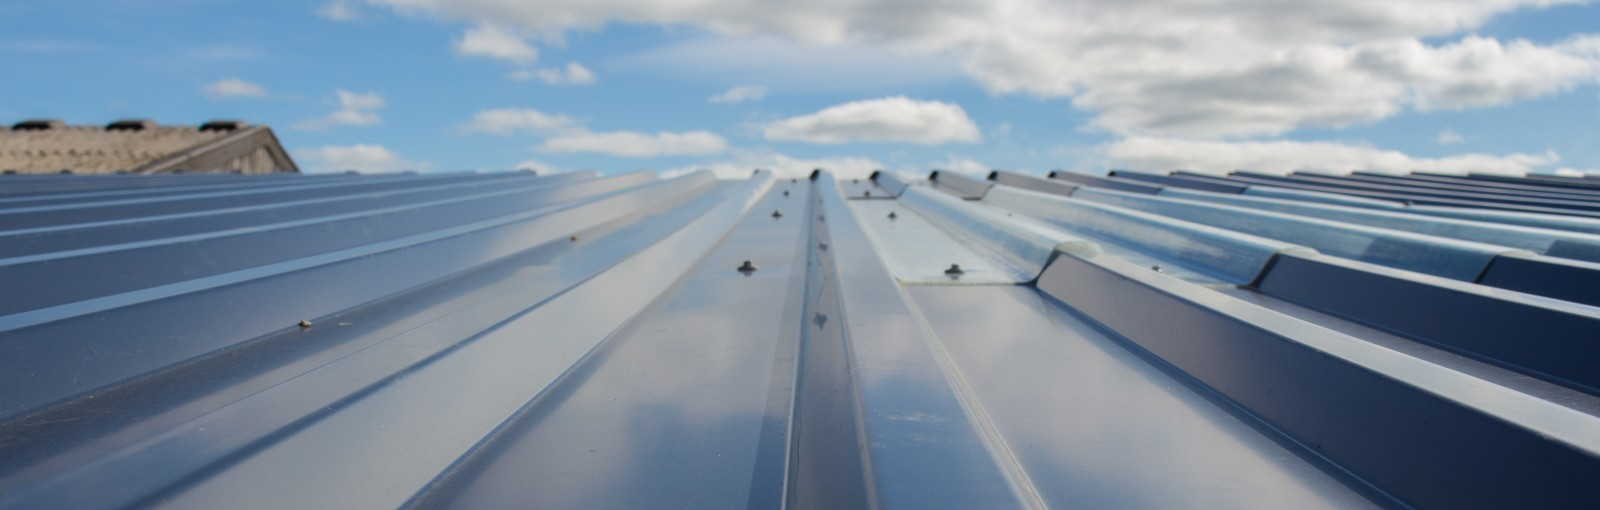 Metal roofing installed on a farm building